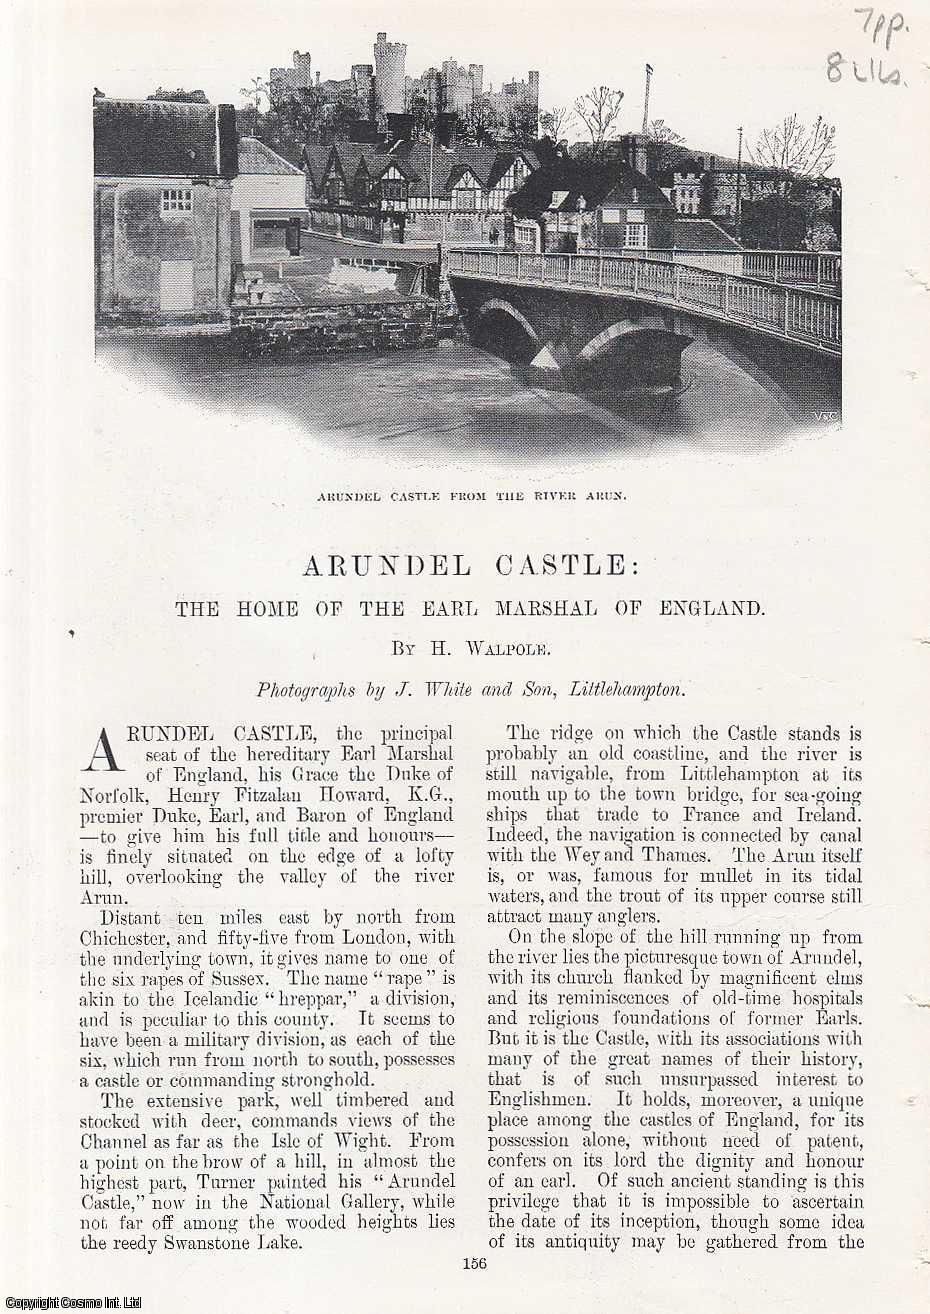 Arundel Castle; the Home of the Earl Marshal of England, His Grace the Duke of Norfolk., Walpole, H.